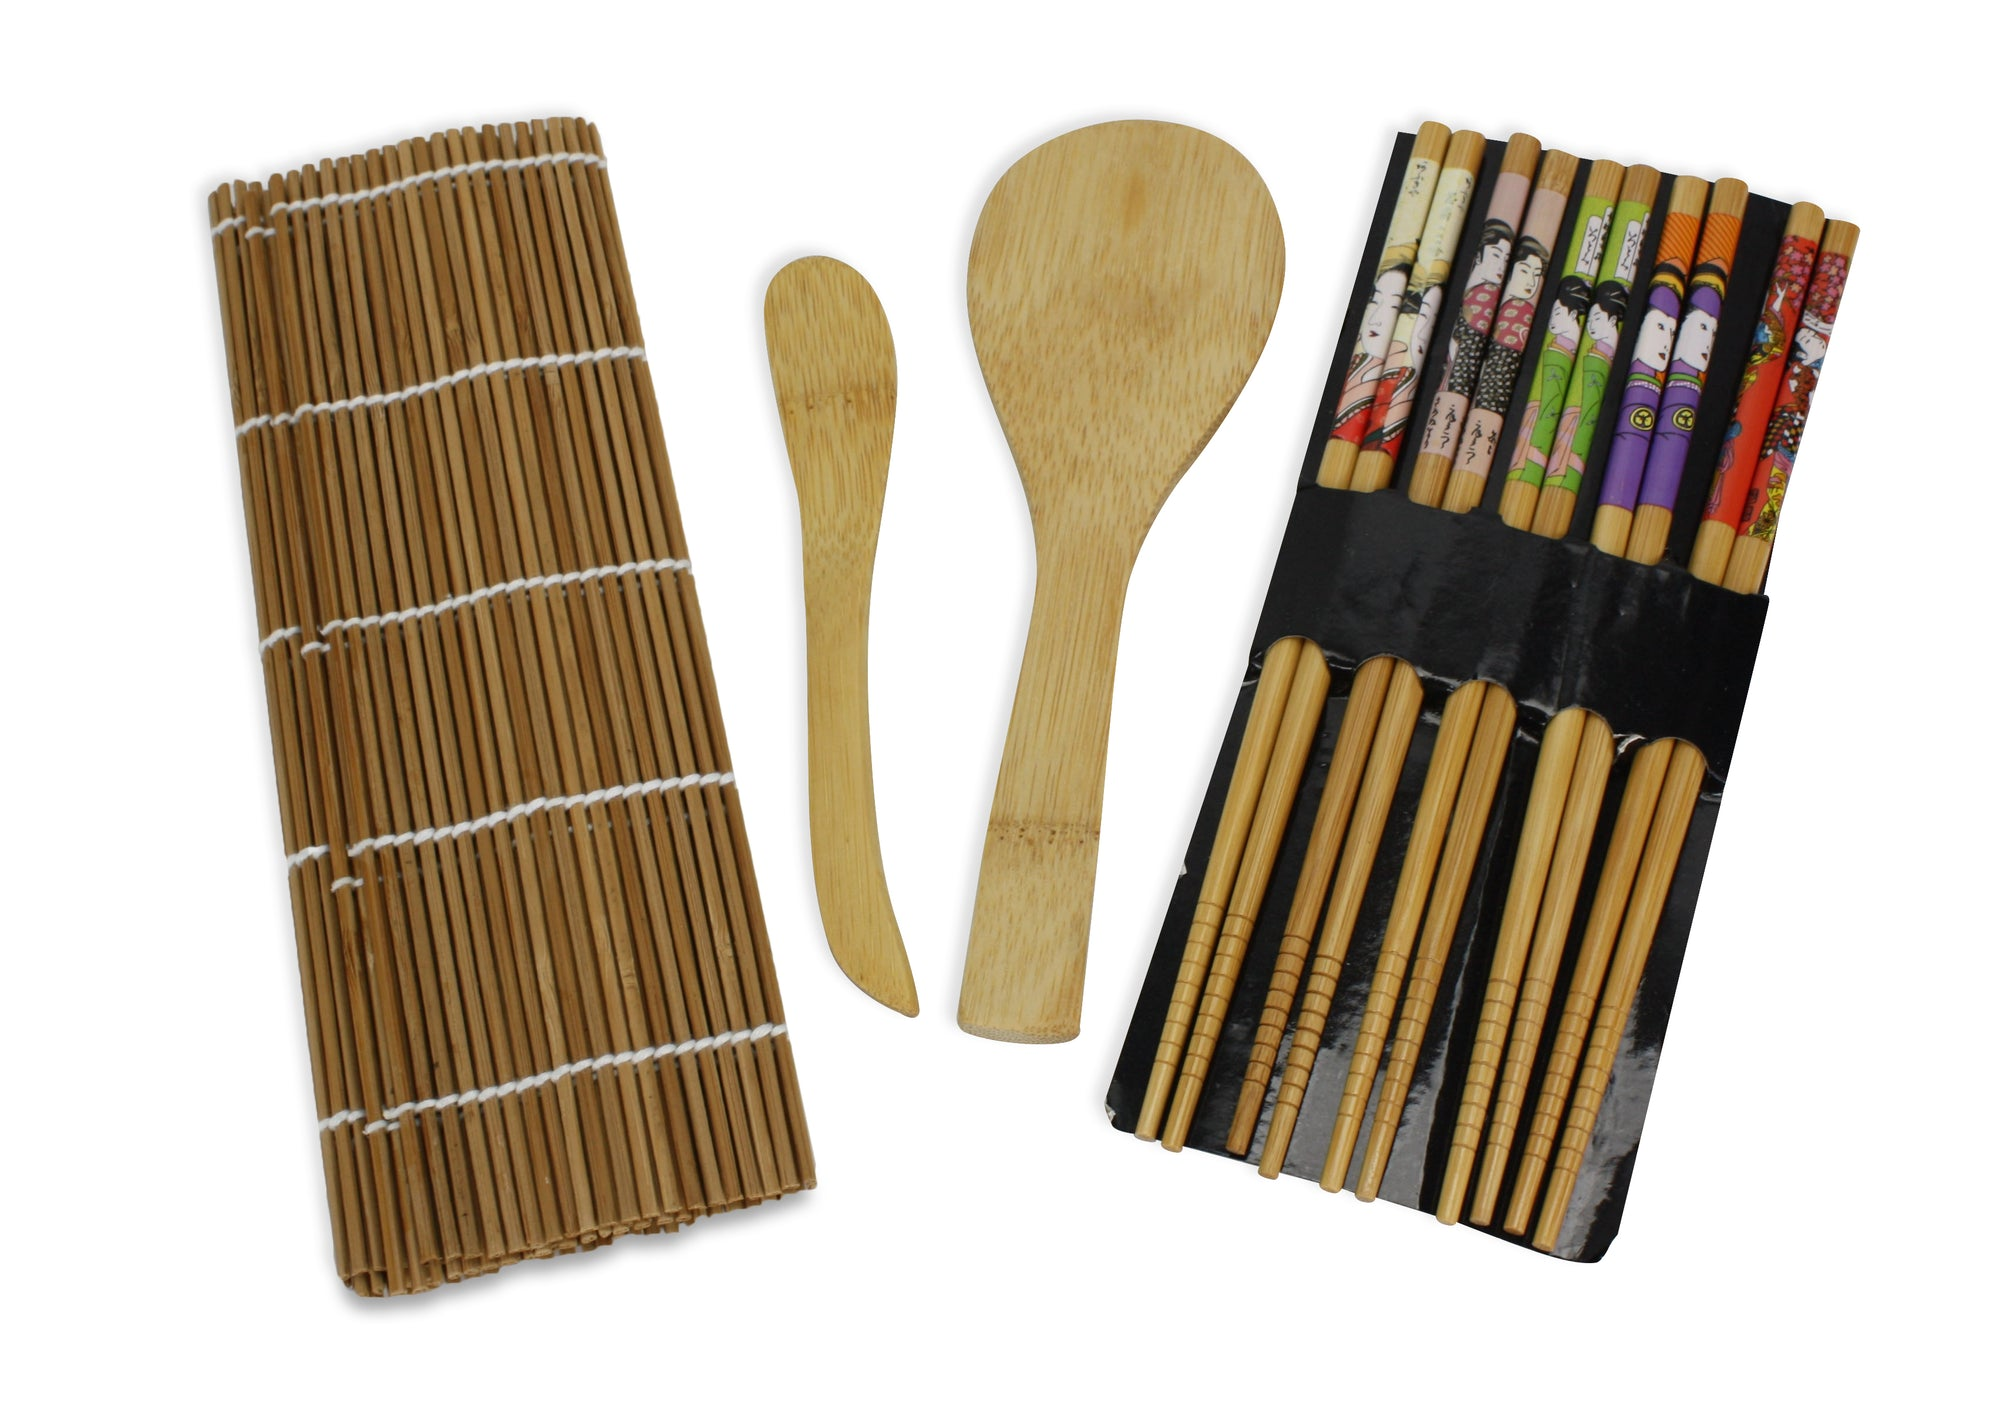 Bamboo 9 Piece Ukiyo-e Sushi Set. Chopsticks, Rolling mats, Rice paddle & spoon set. - farangshop-co